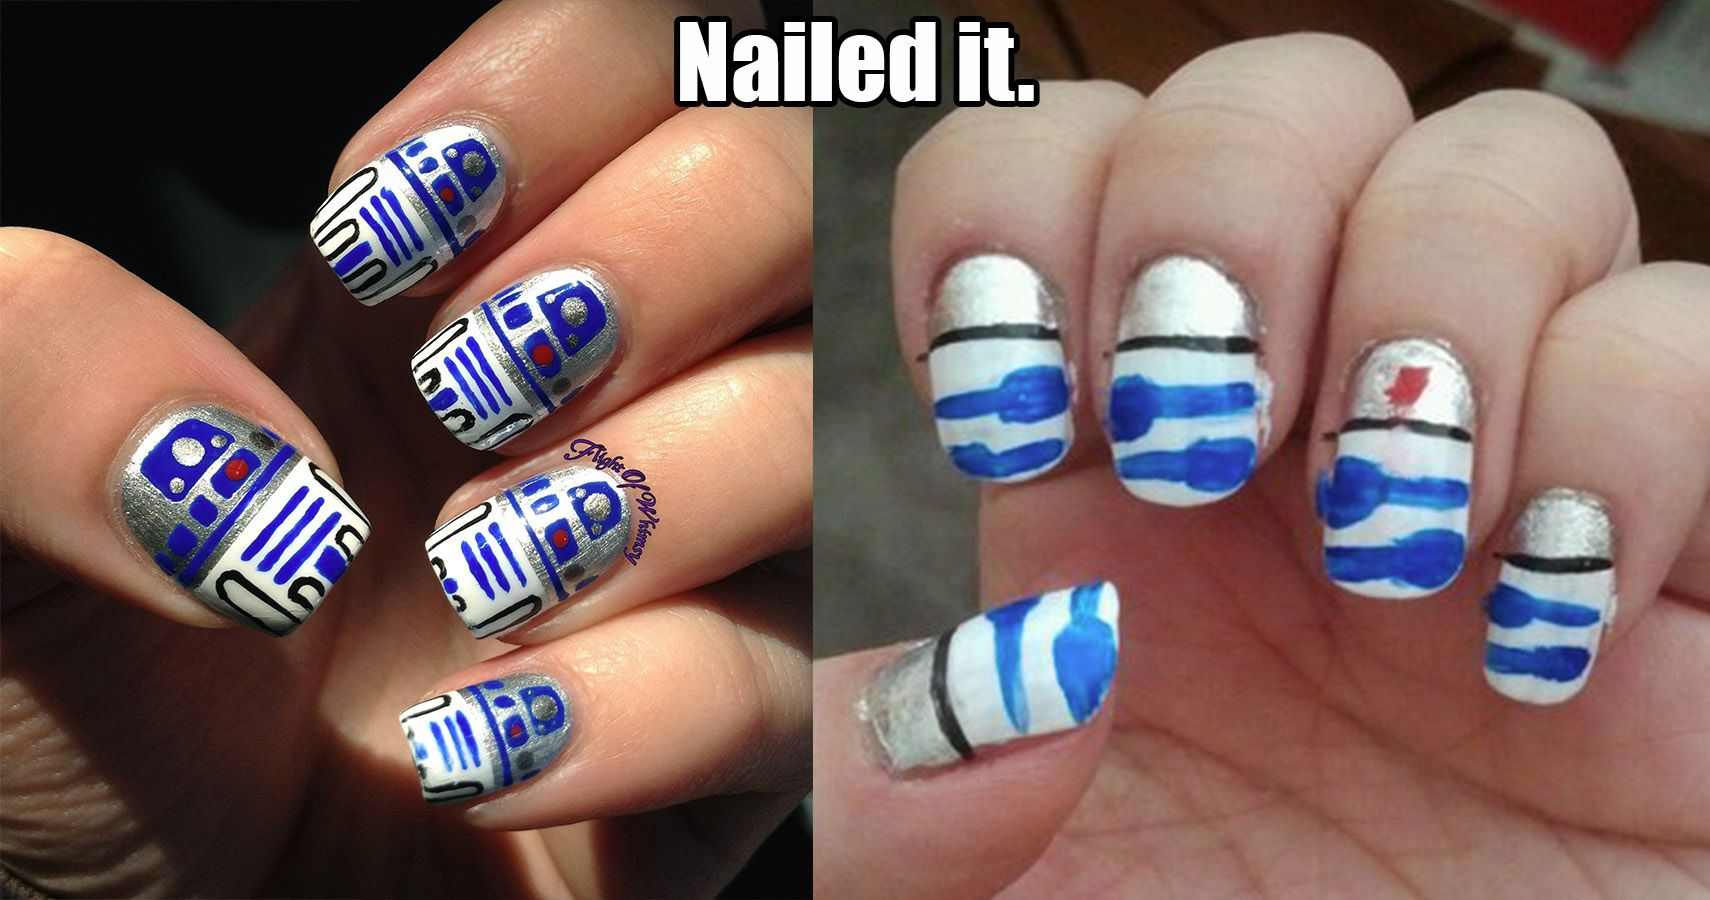 15 Of The Worst Nail Art Attempts That Totally #NailedIt